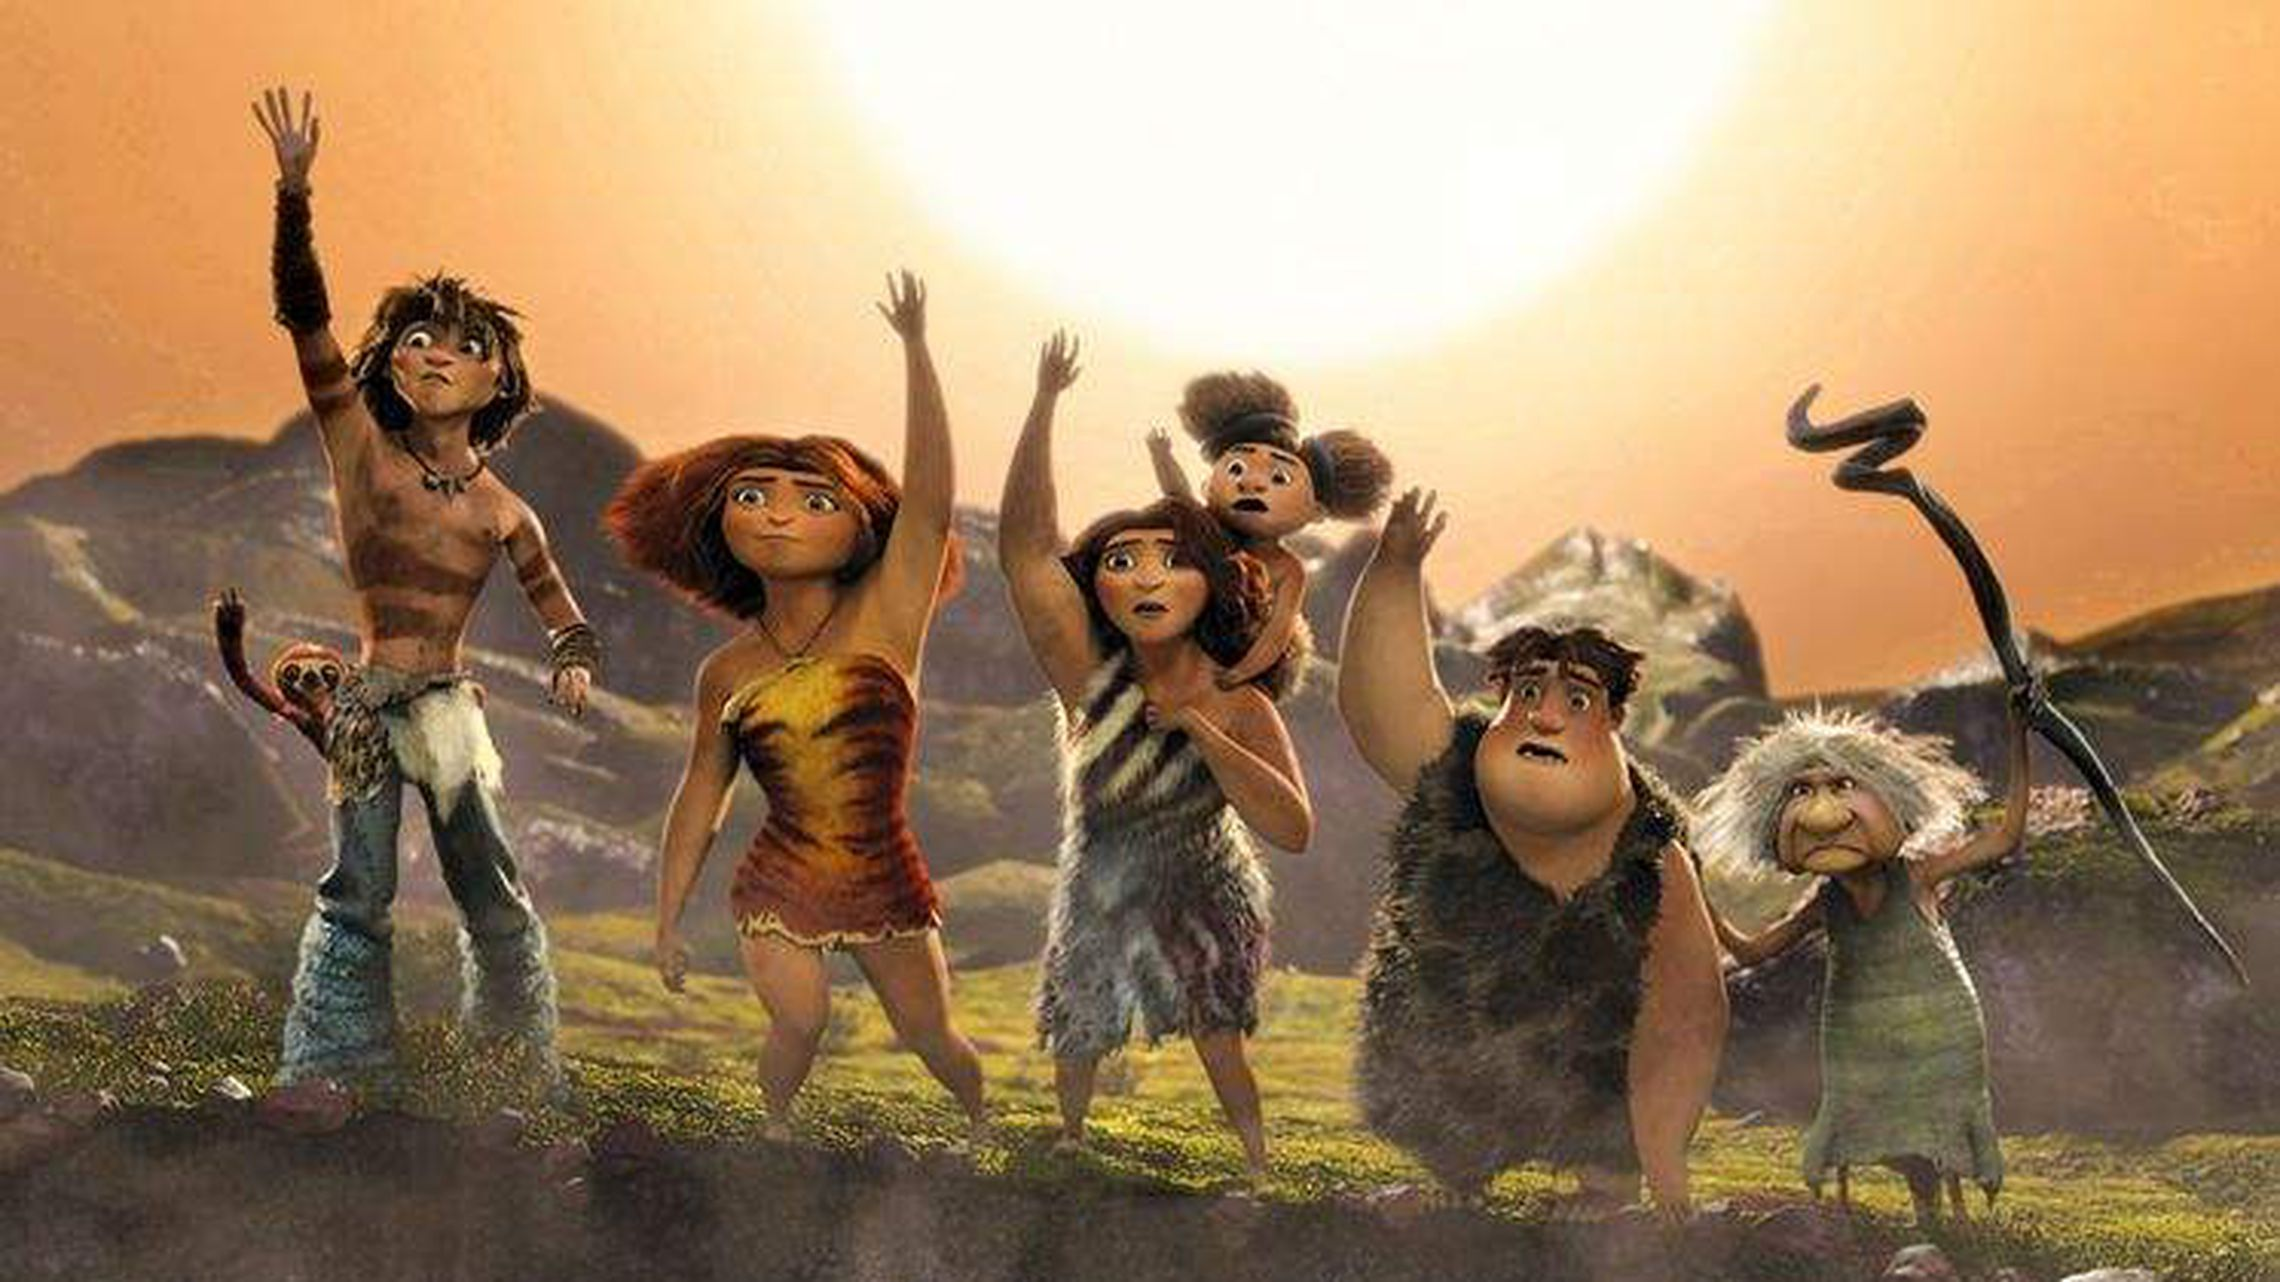 Review: 'The Croods' is the same old story with bursts of fun